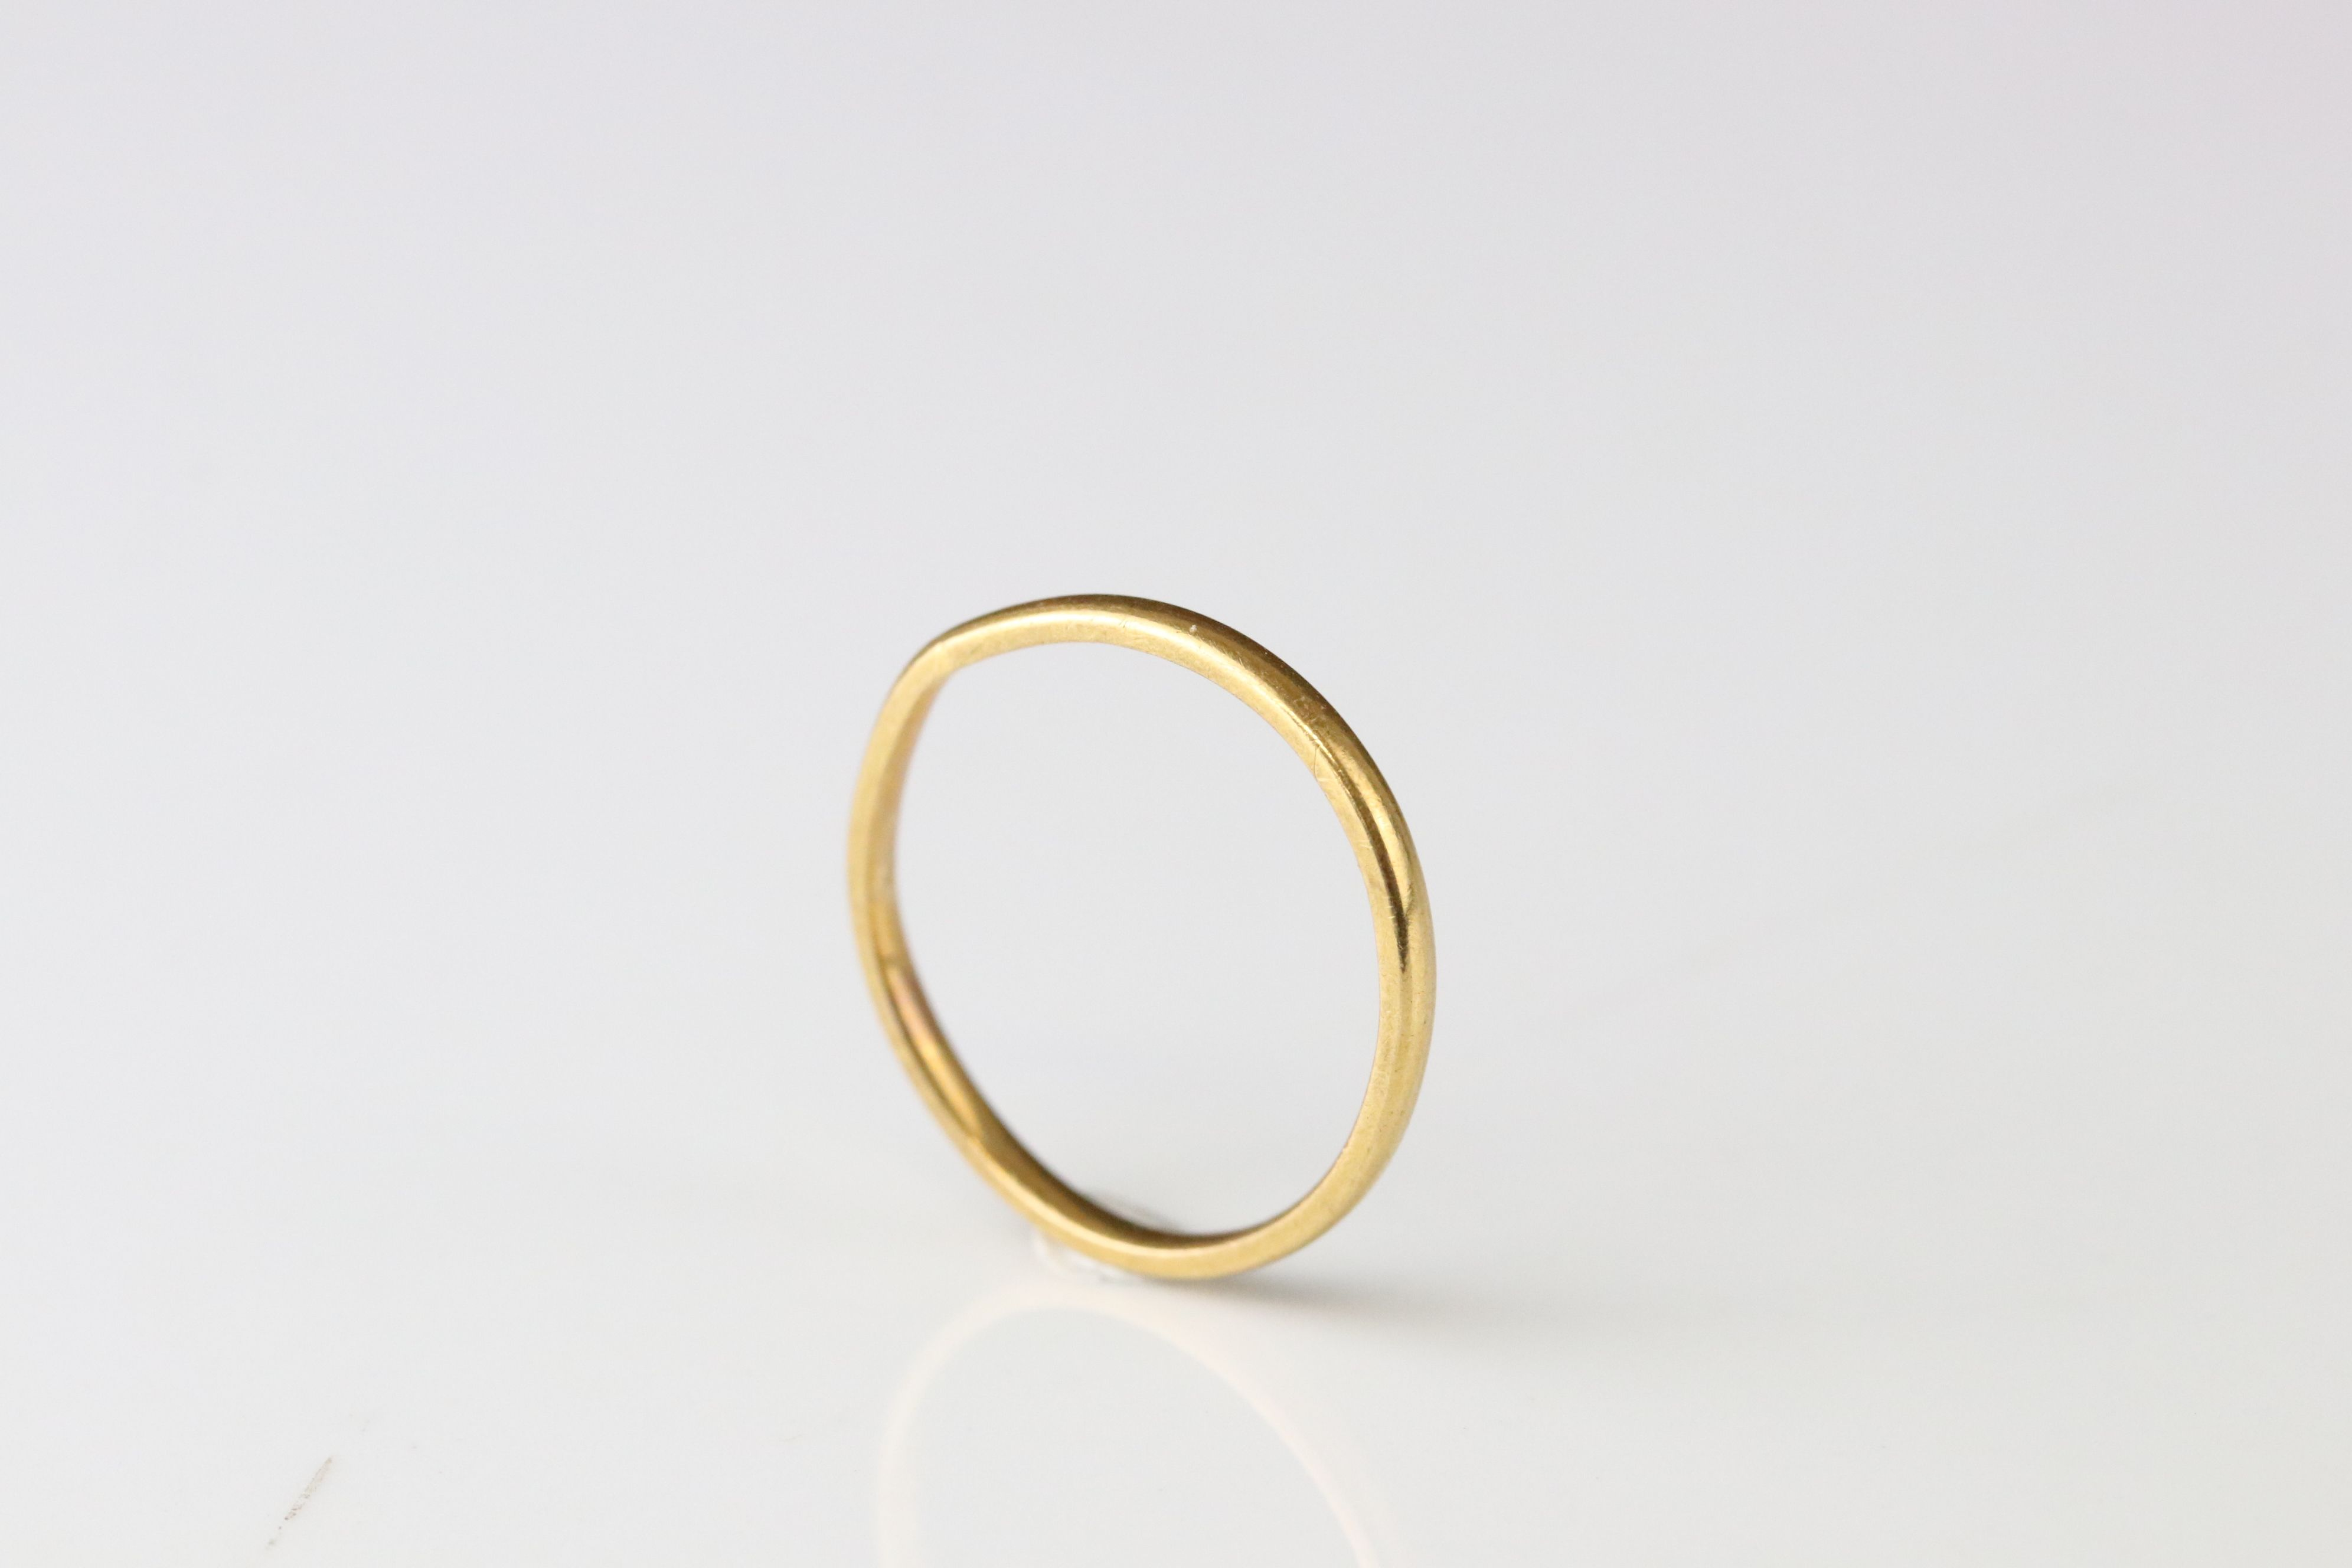 22ct yellow gold wedding band, width approx 1.5mm, ring size L